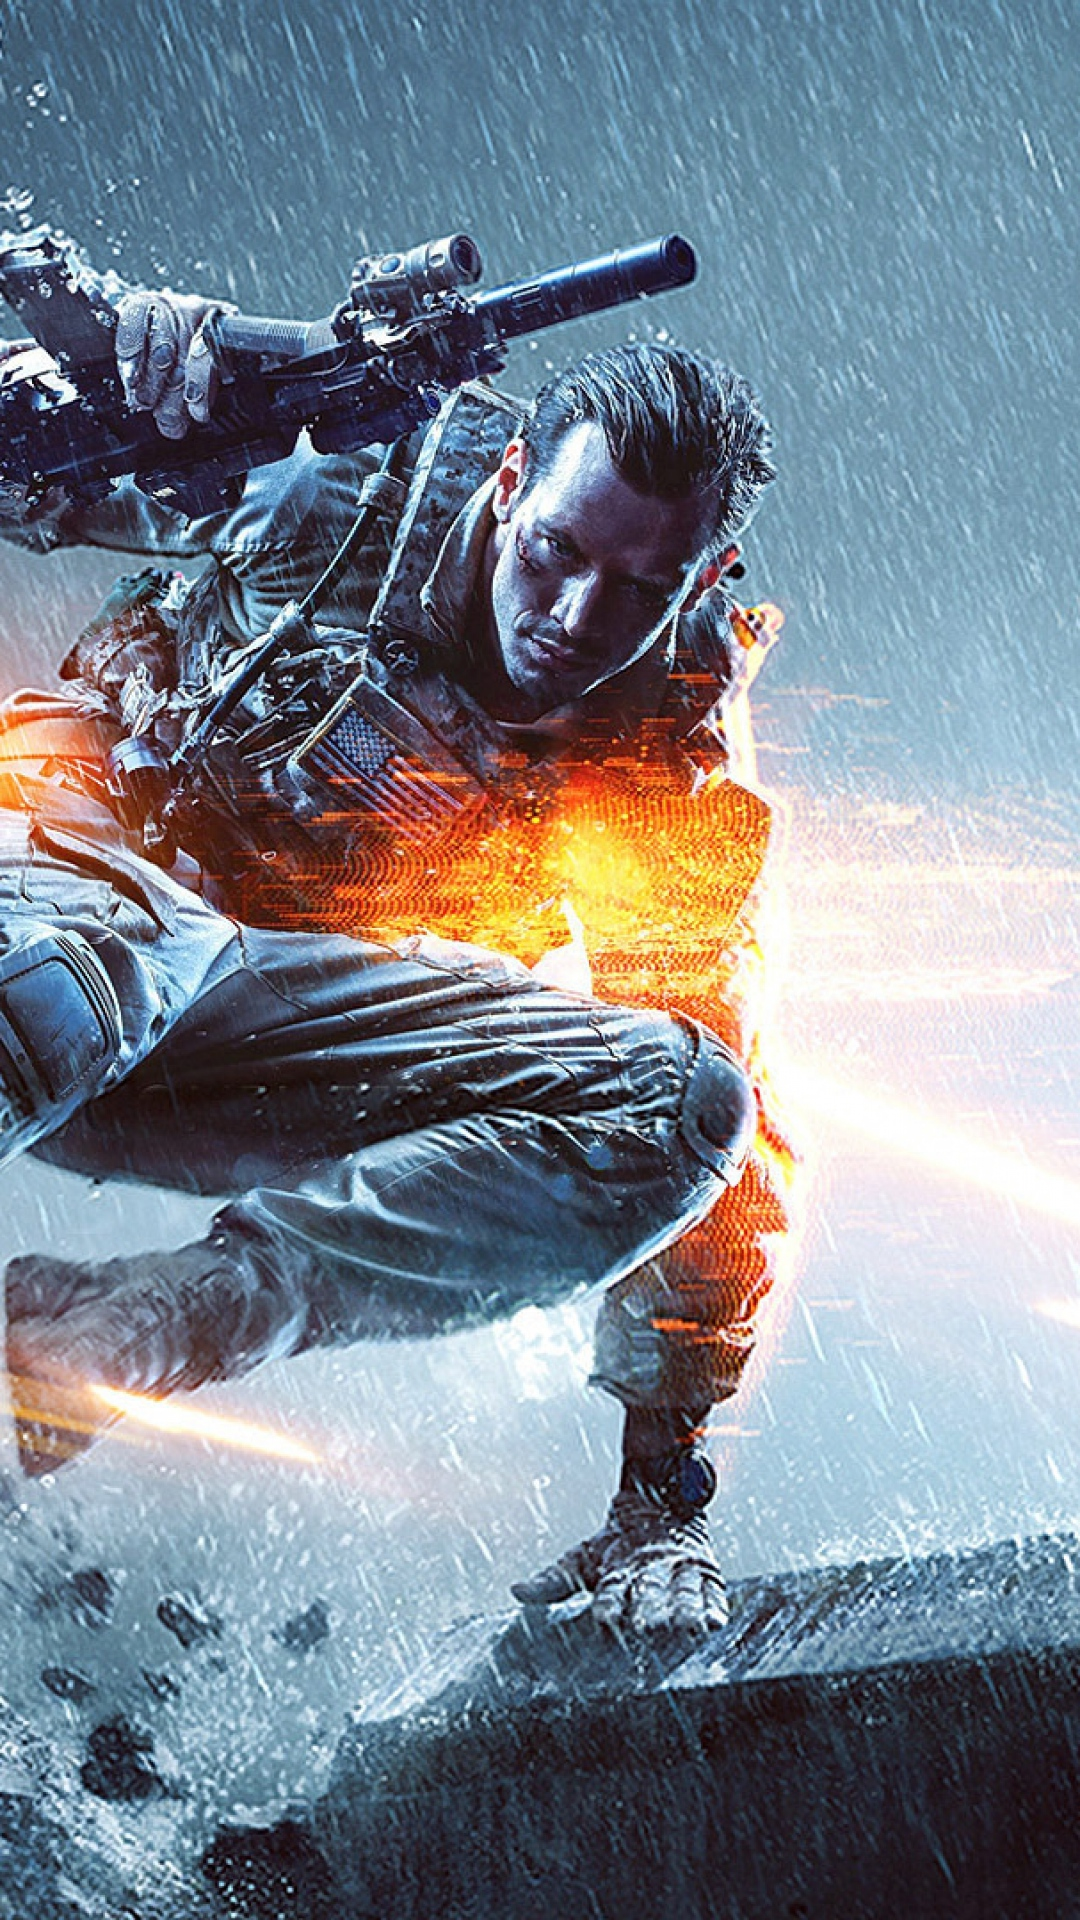 45 bf4 wallpaper 4k on wallpapersafari - Bf4 wallpaper ...